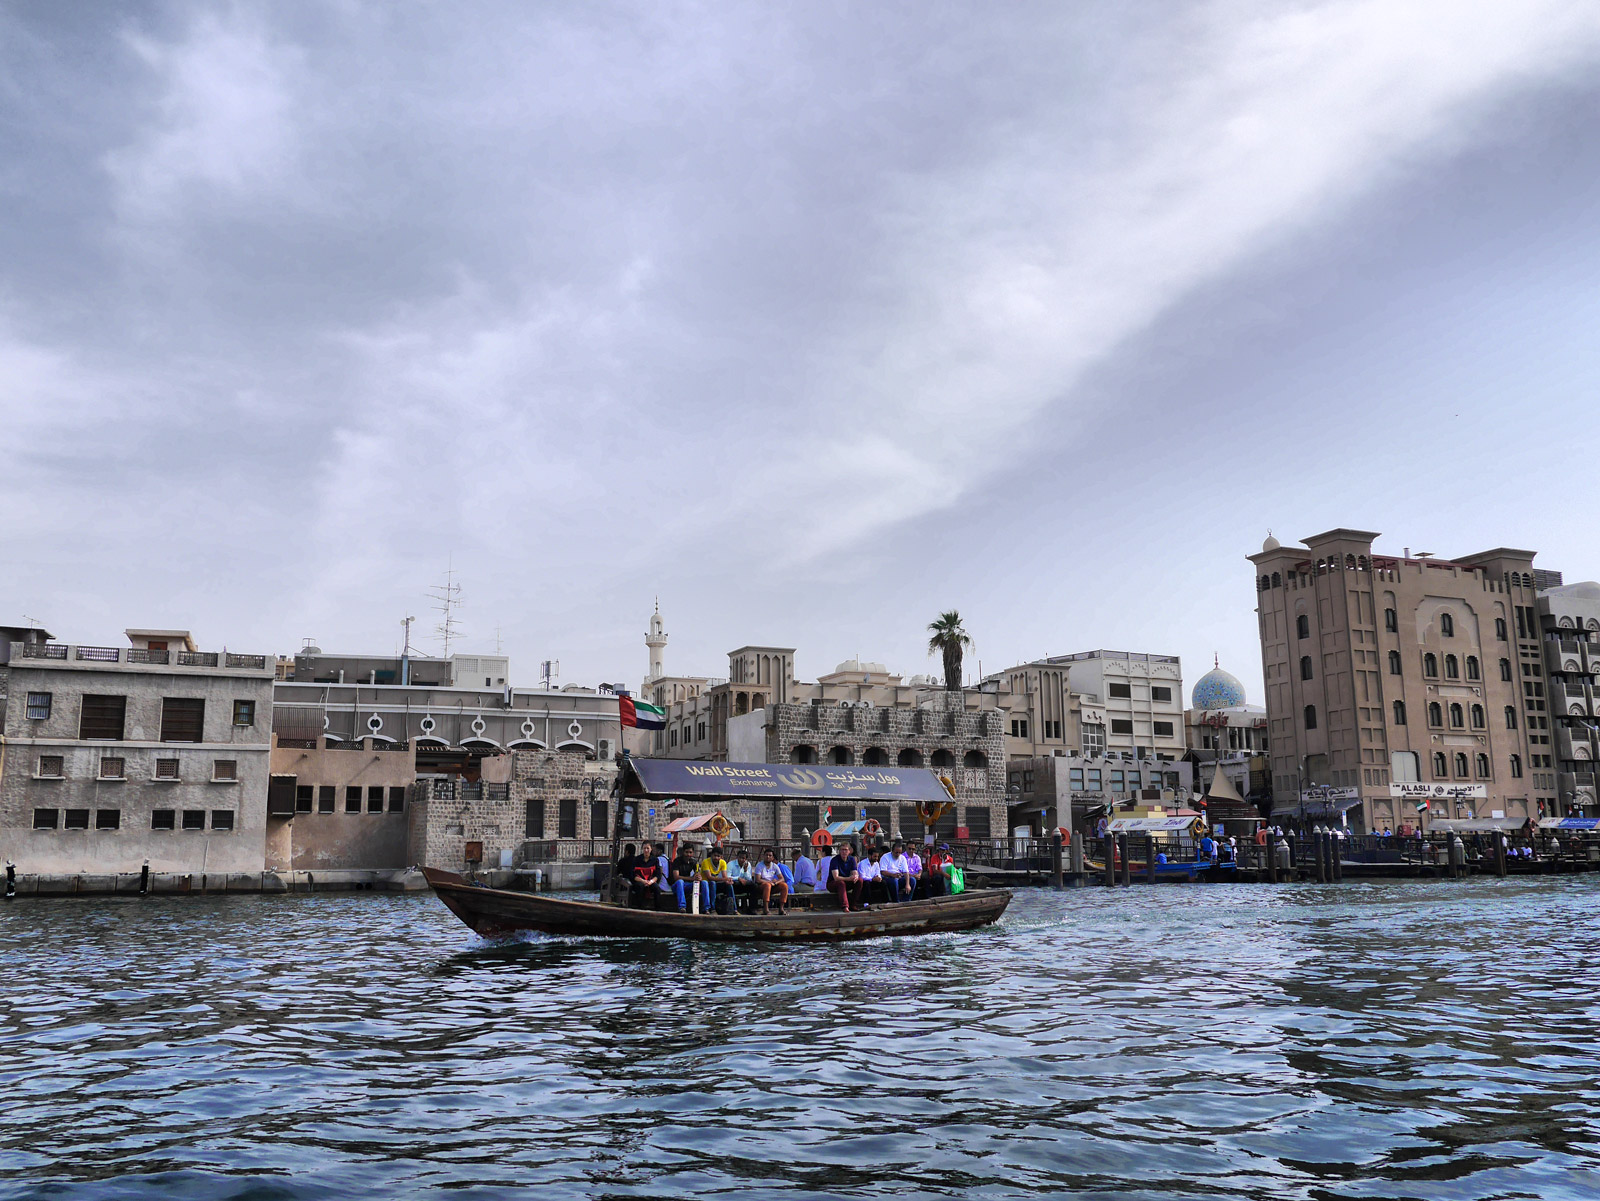 On the Creek: Bur Dubai Old Souk to Deira - Dubai, United Arab Emirates